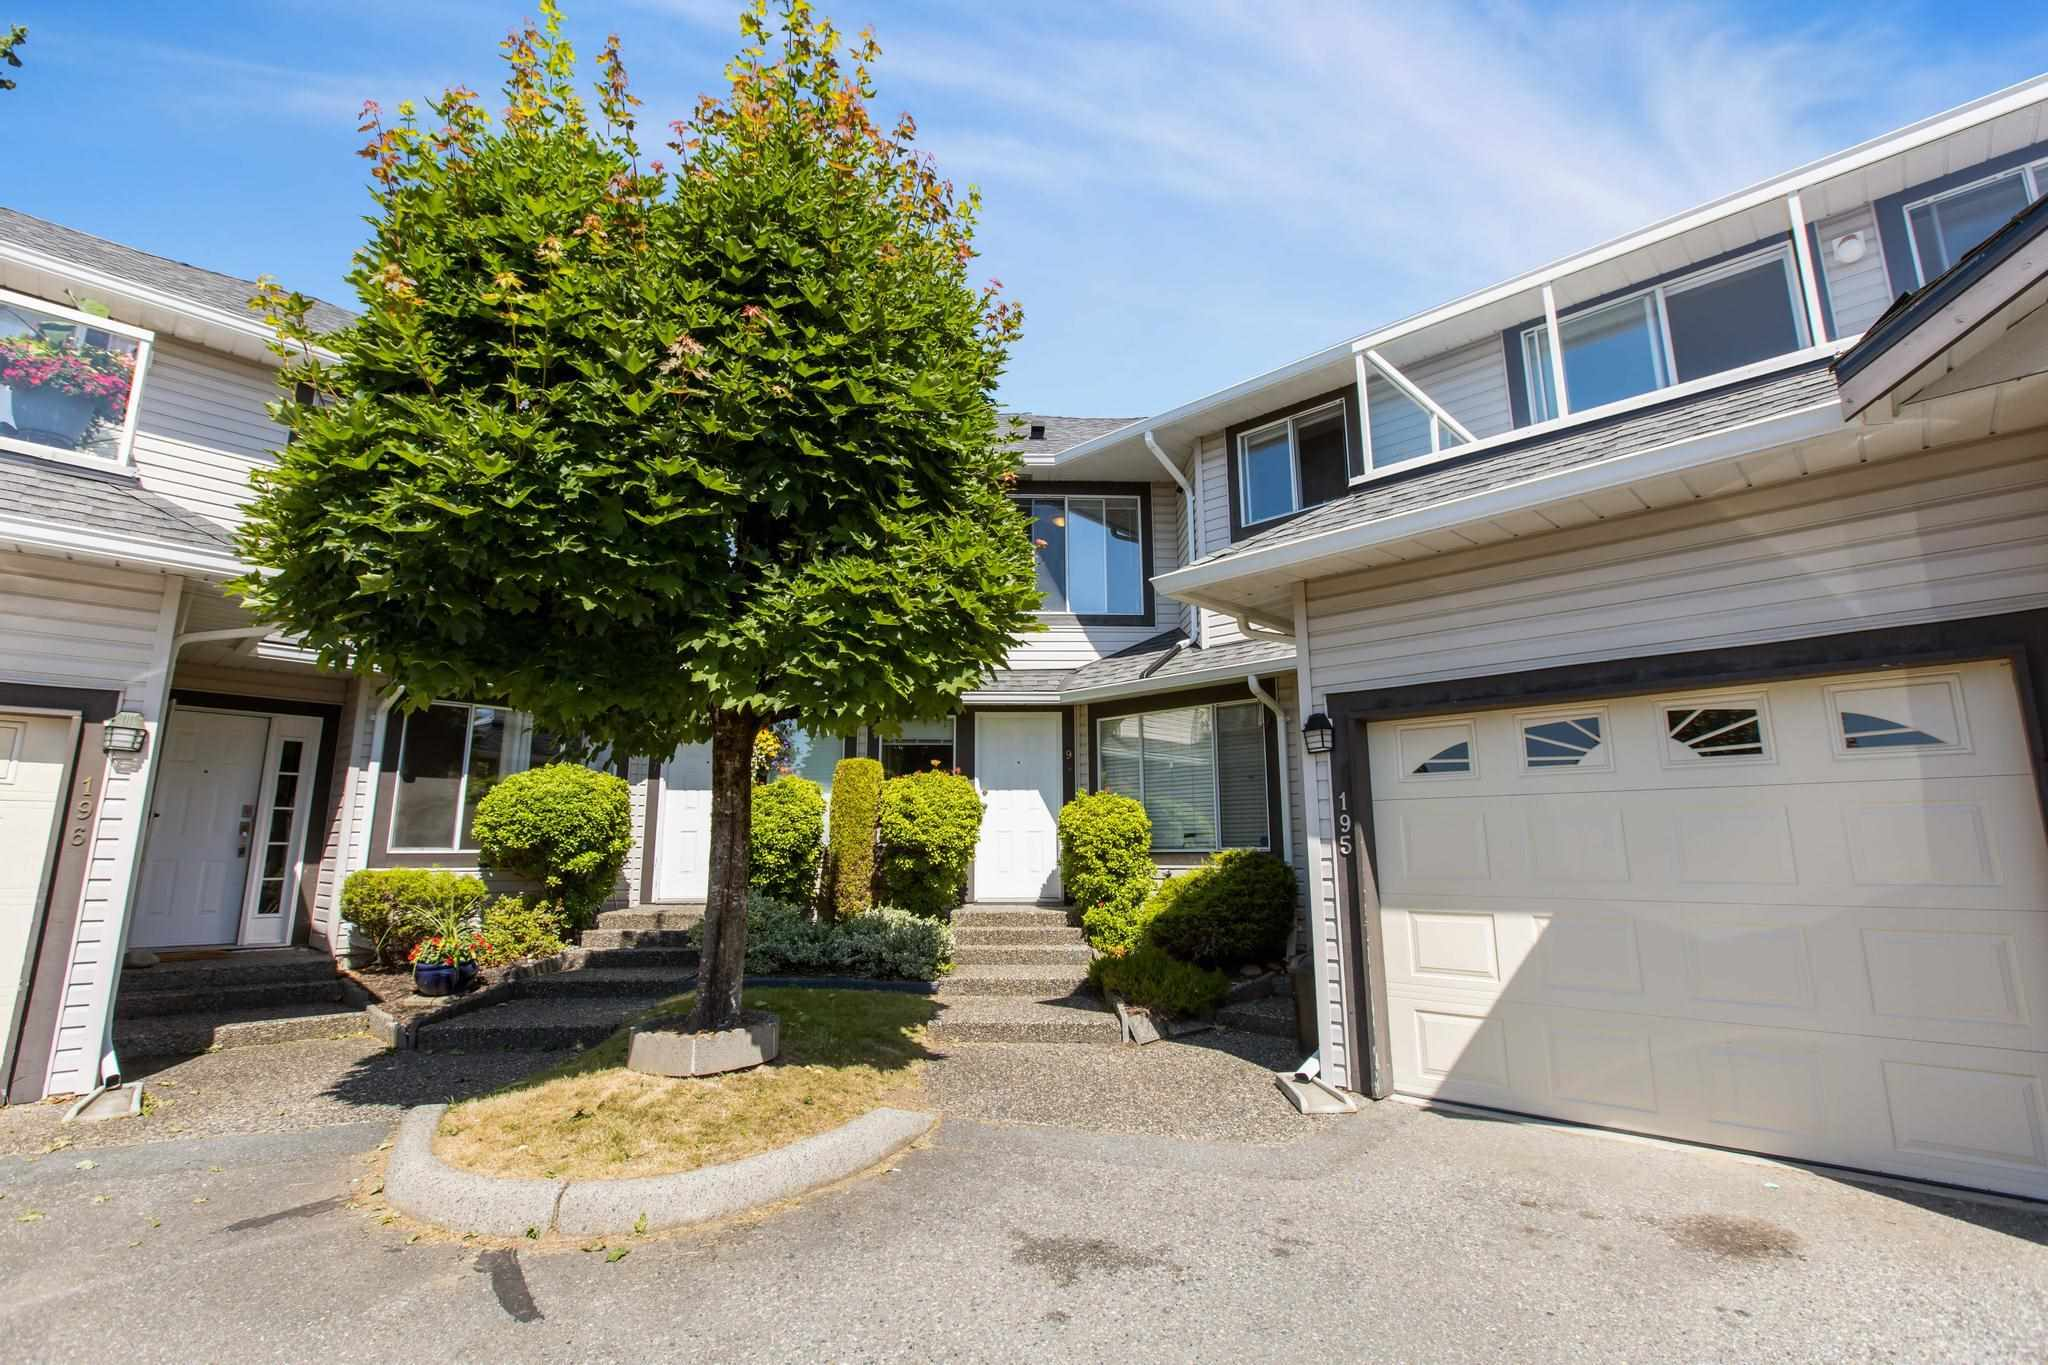 194 3160 TOWNLINE ROAD - Abbotsford West Townhouse for sale, 3 Bedrooms (R2592150) - #1